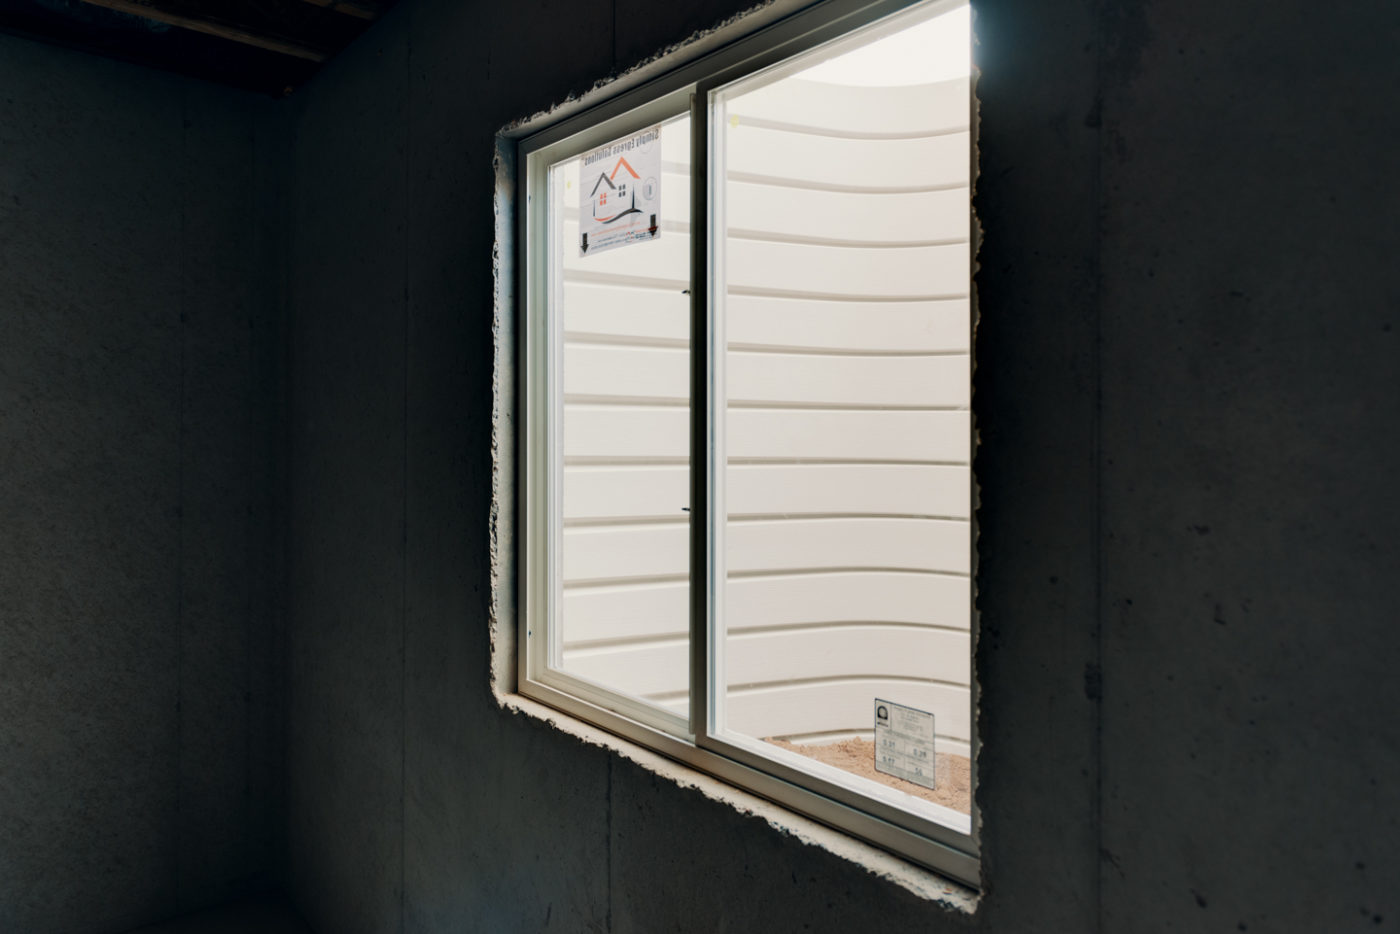 Light Weight Denali Series Egress Window Wells built by RockWell egress window wells, covers, grates, ladders, and accessories